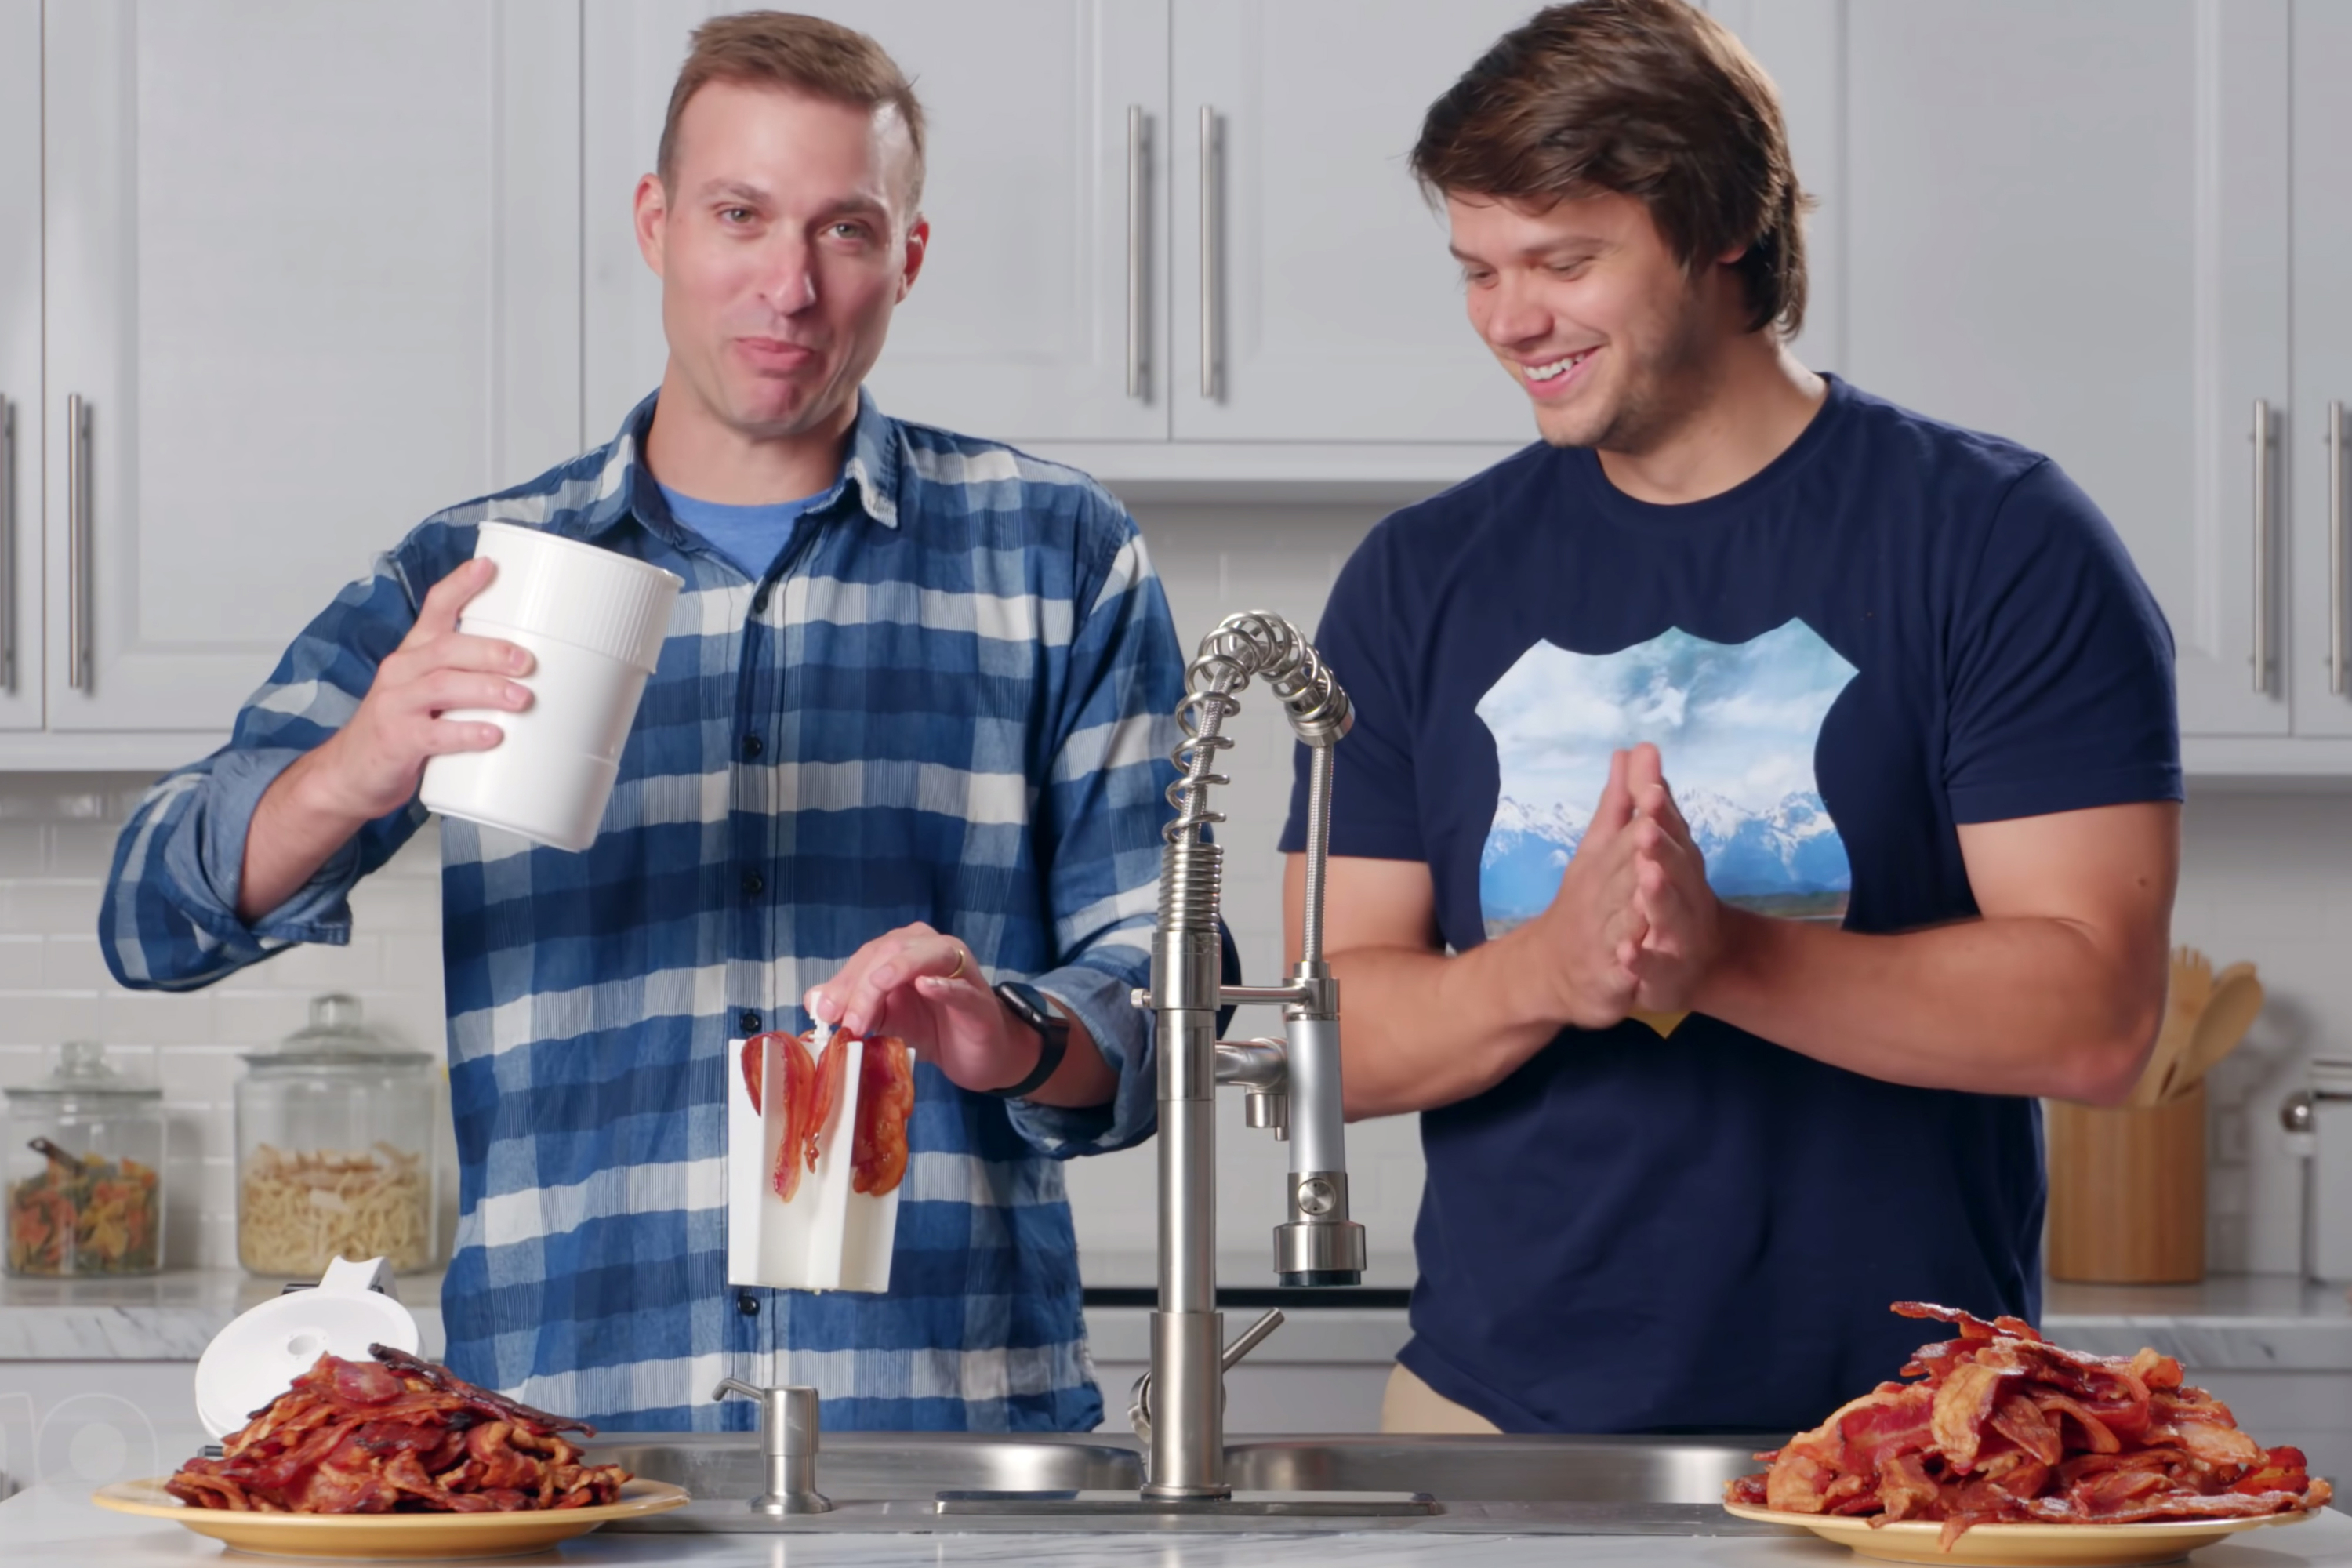 How YouTube influencers helped Liquid-Plumr increase sales